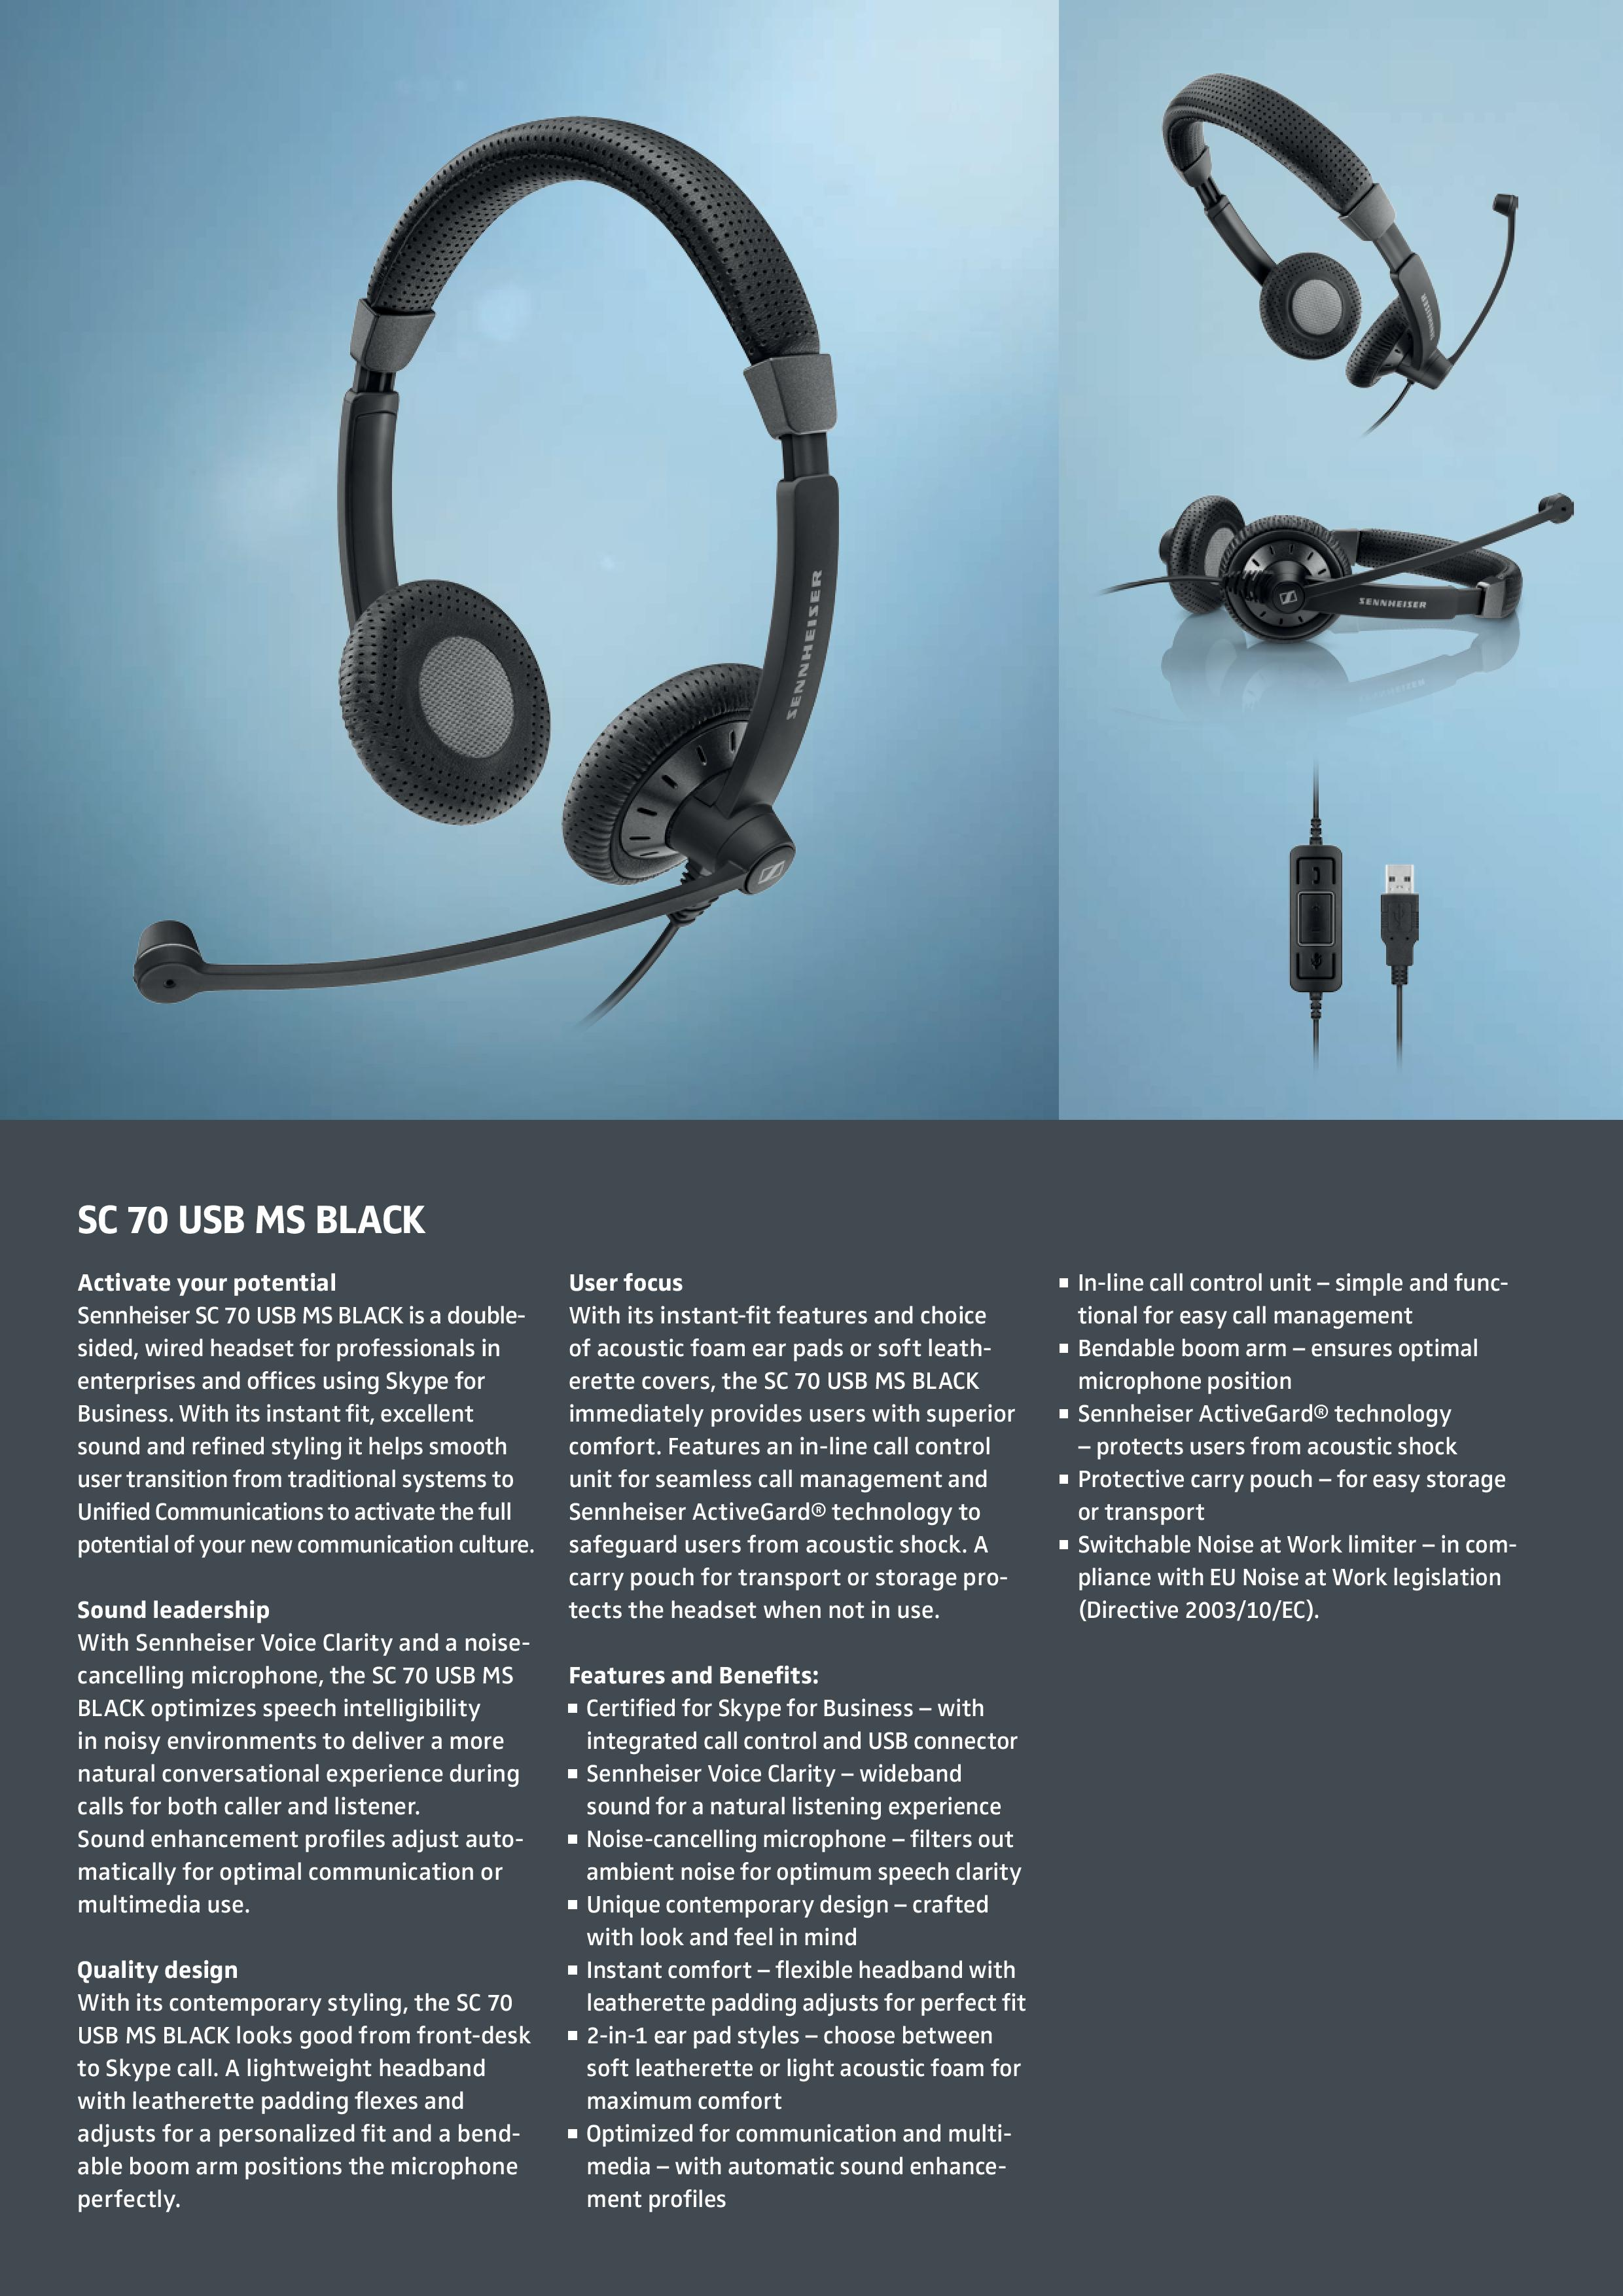 EPOS l Sennheiser IMPACT SC70 USB MS Black Double-Sided corded headset with USB Connect, Skype For Business Certified